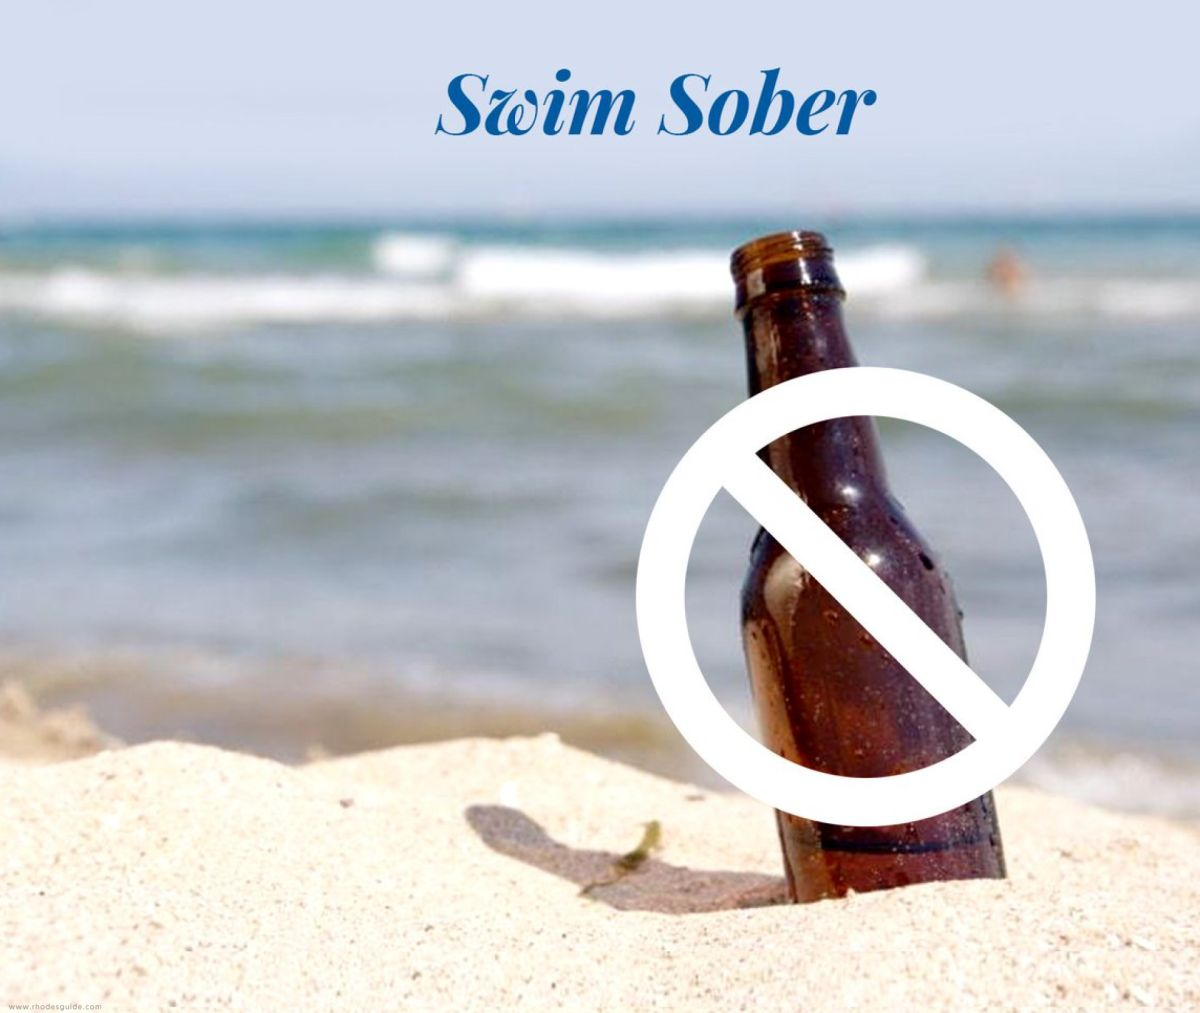 Don't drink and swim! © Rhodes Guide / RhodesGuide.com